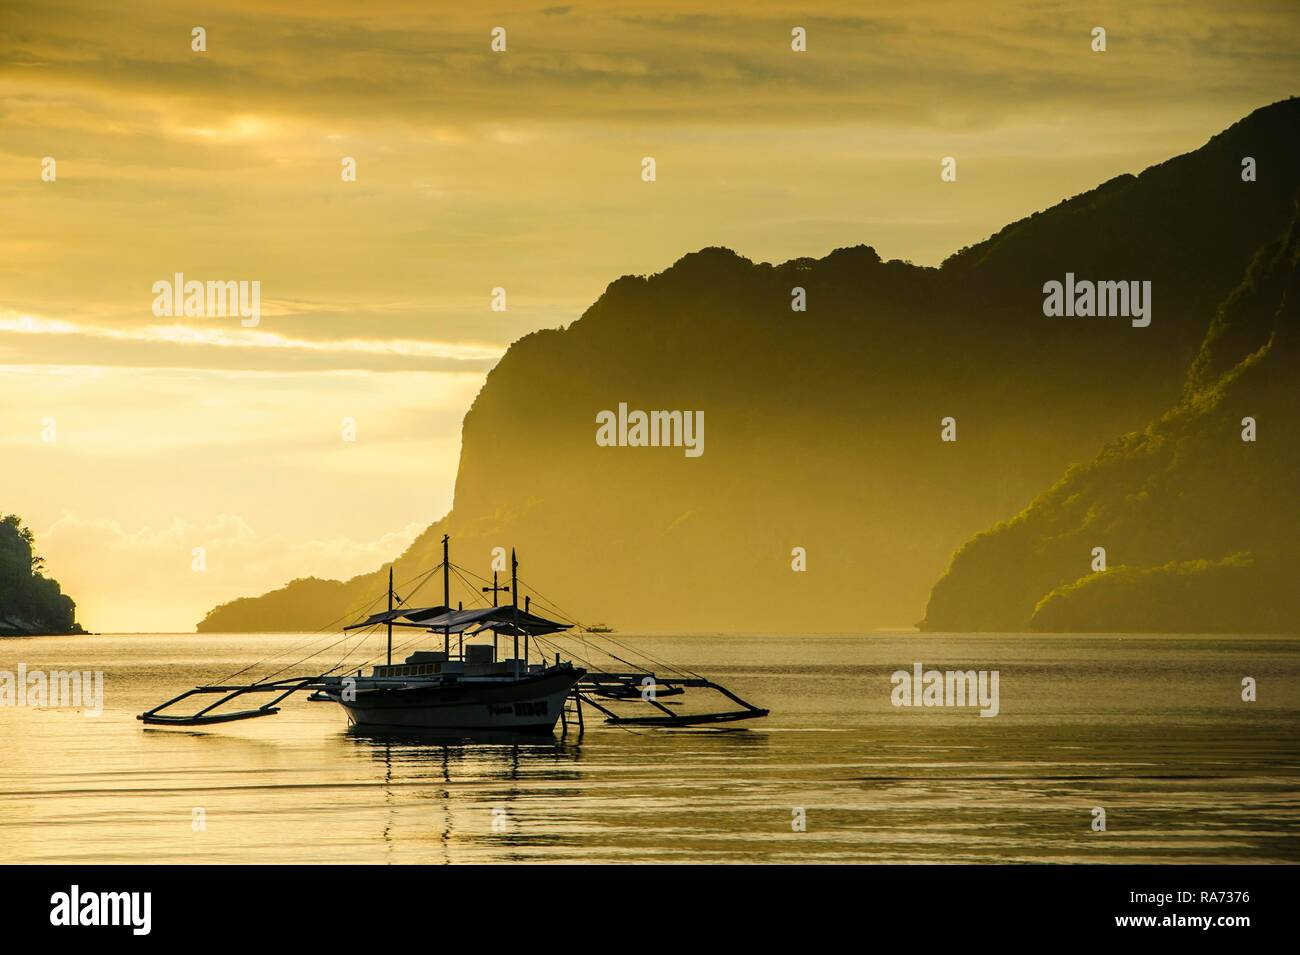 Silhouete of Outrigger at sunset in El Nido, Bacuit Archipelago, Palawan, Philippines - Stock Image